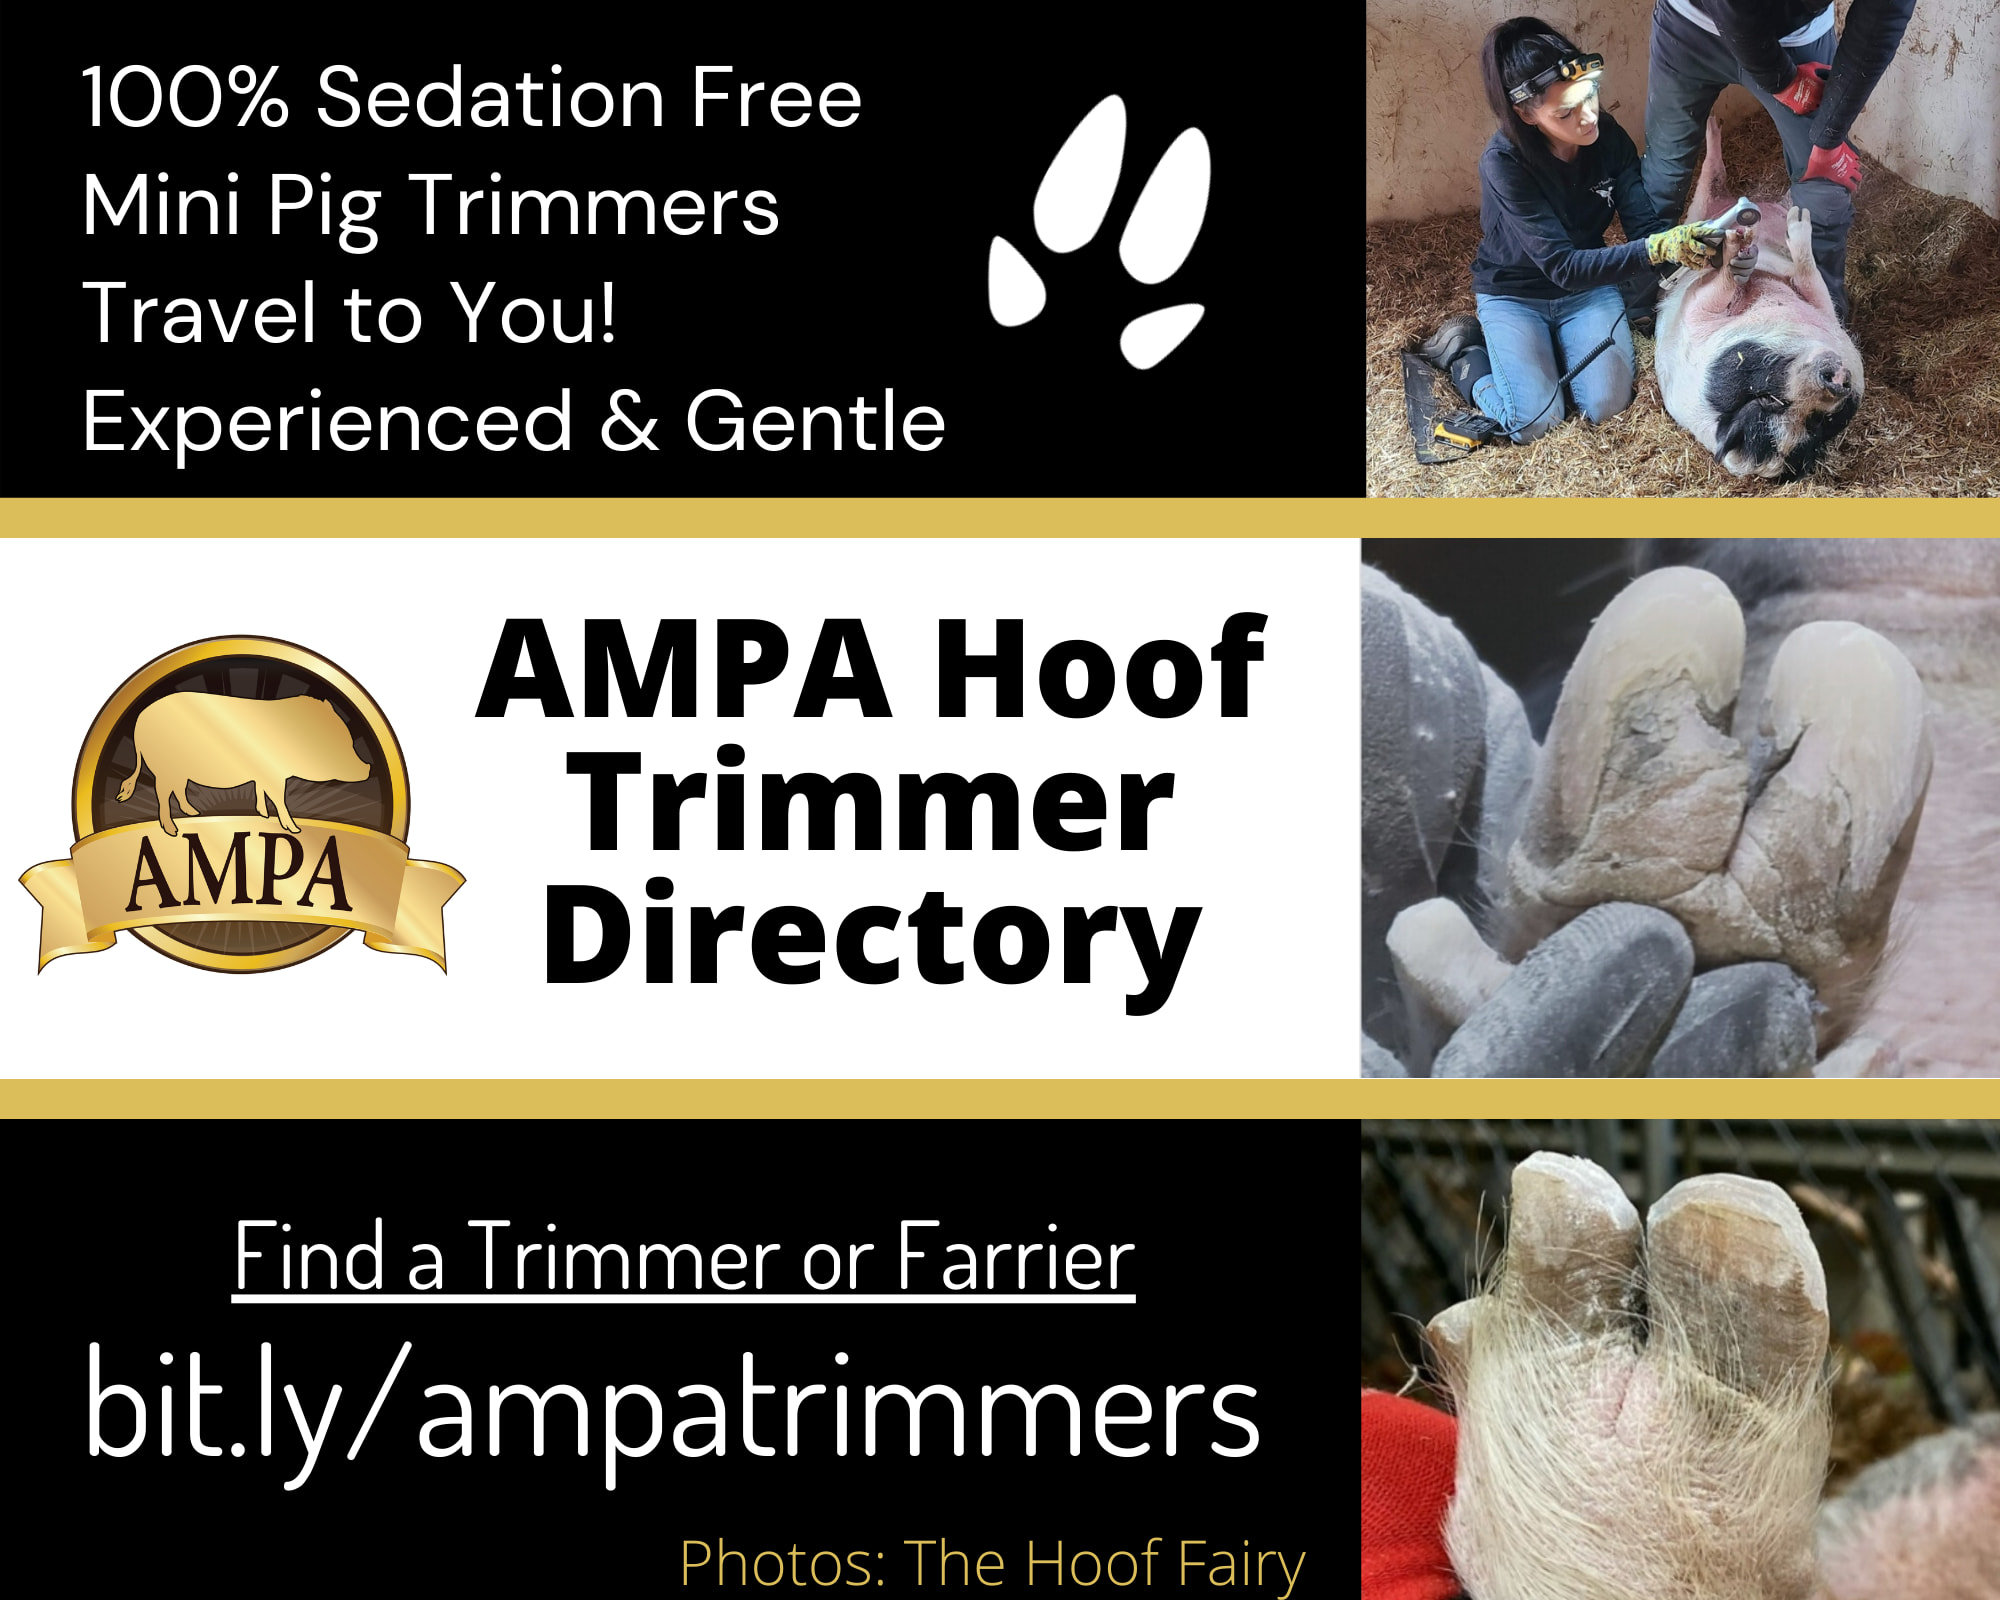 AMPA Hoof Trimmers